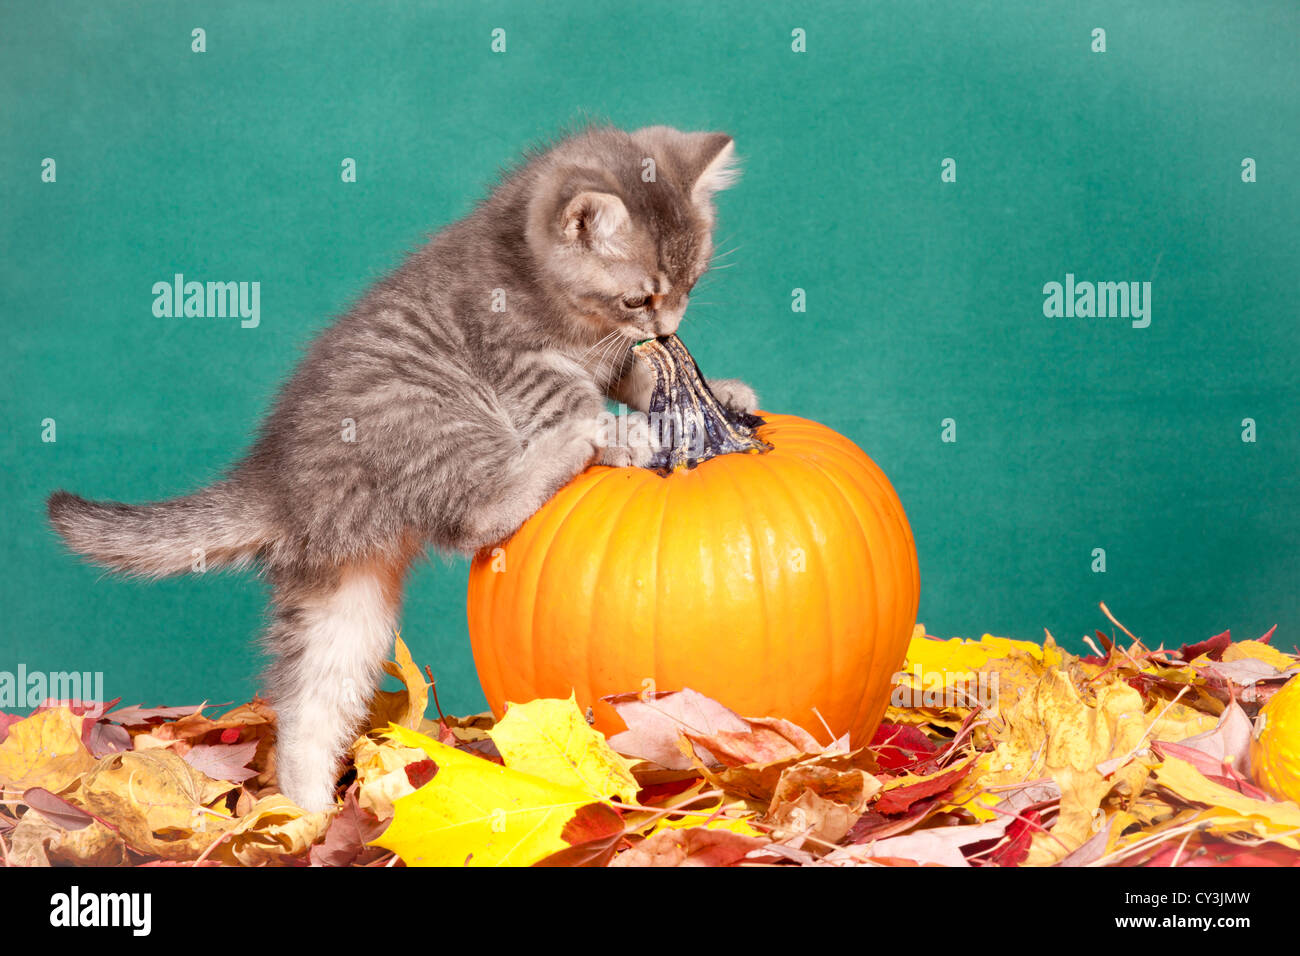 A curious kitten climbs onto a pumpkin. - Stock Image